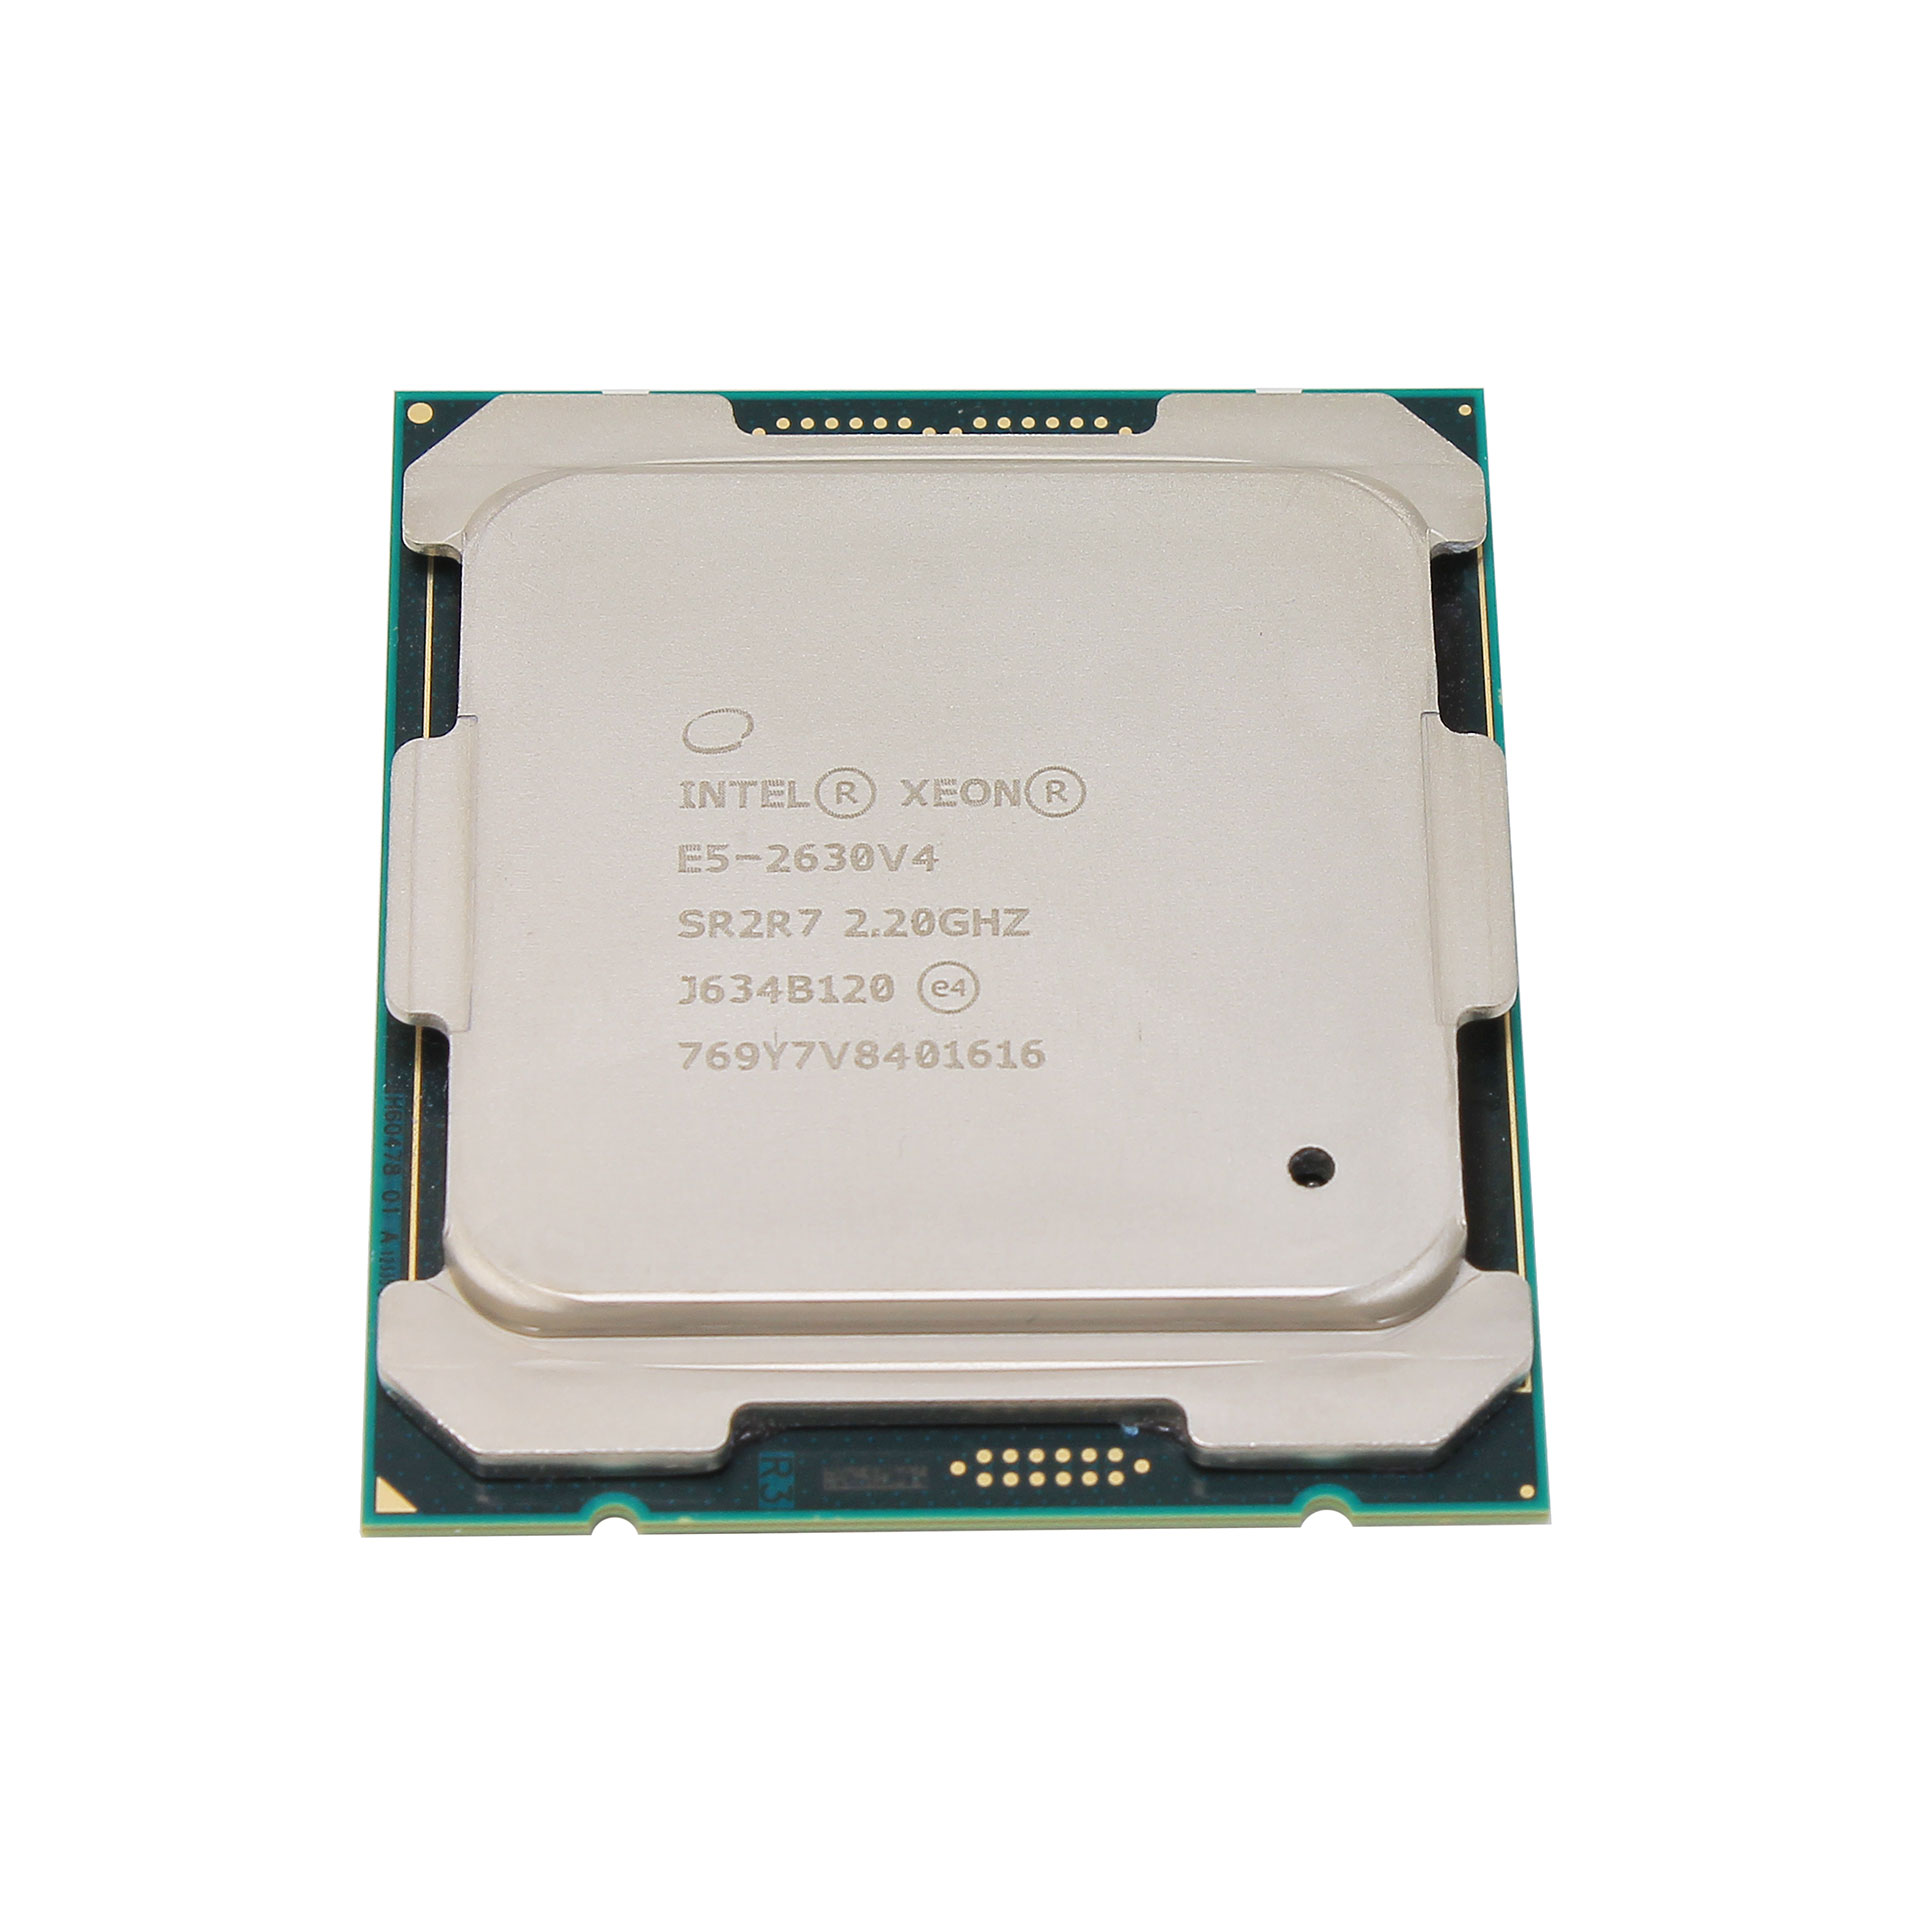 Intel Xeon E5-2630 v4 2.2GHz Ten-Core LGA 2011-3 Processor SR2R7